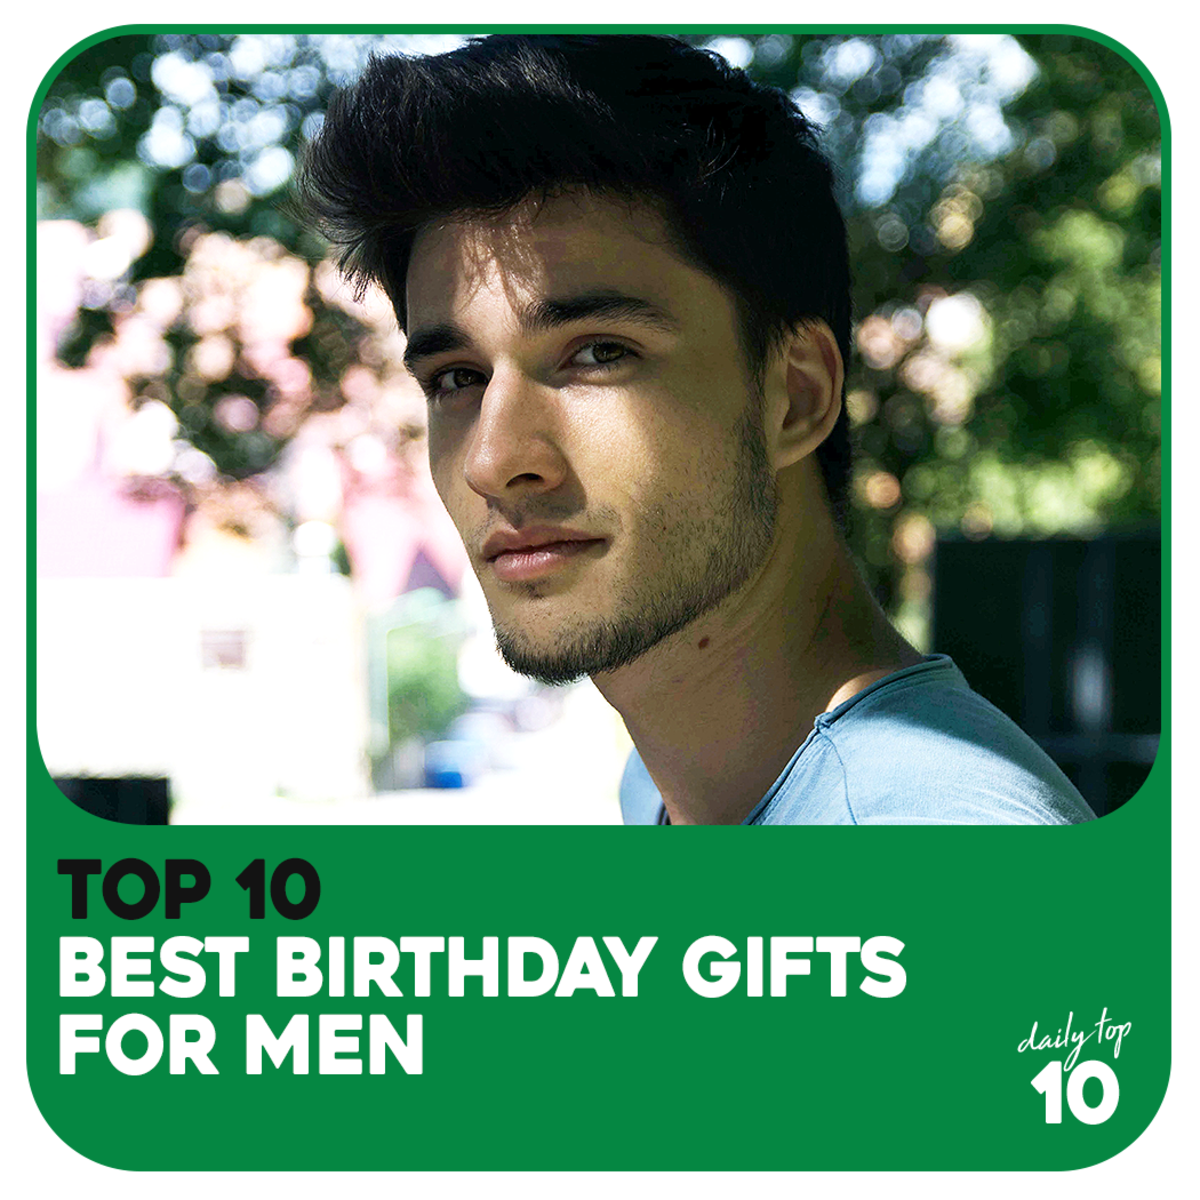 90b840d9 Top 10 Best Birthday Gifts for Men (Father, Husband, Brother, Friend) |  Holidappy